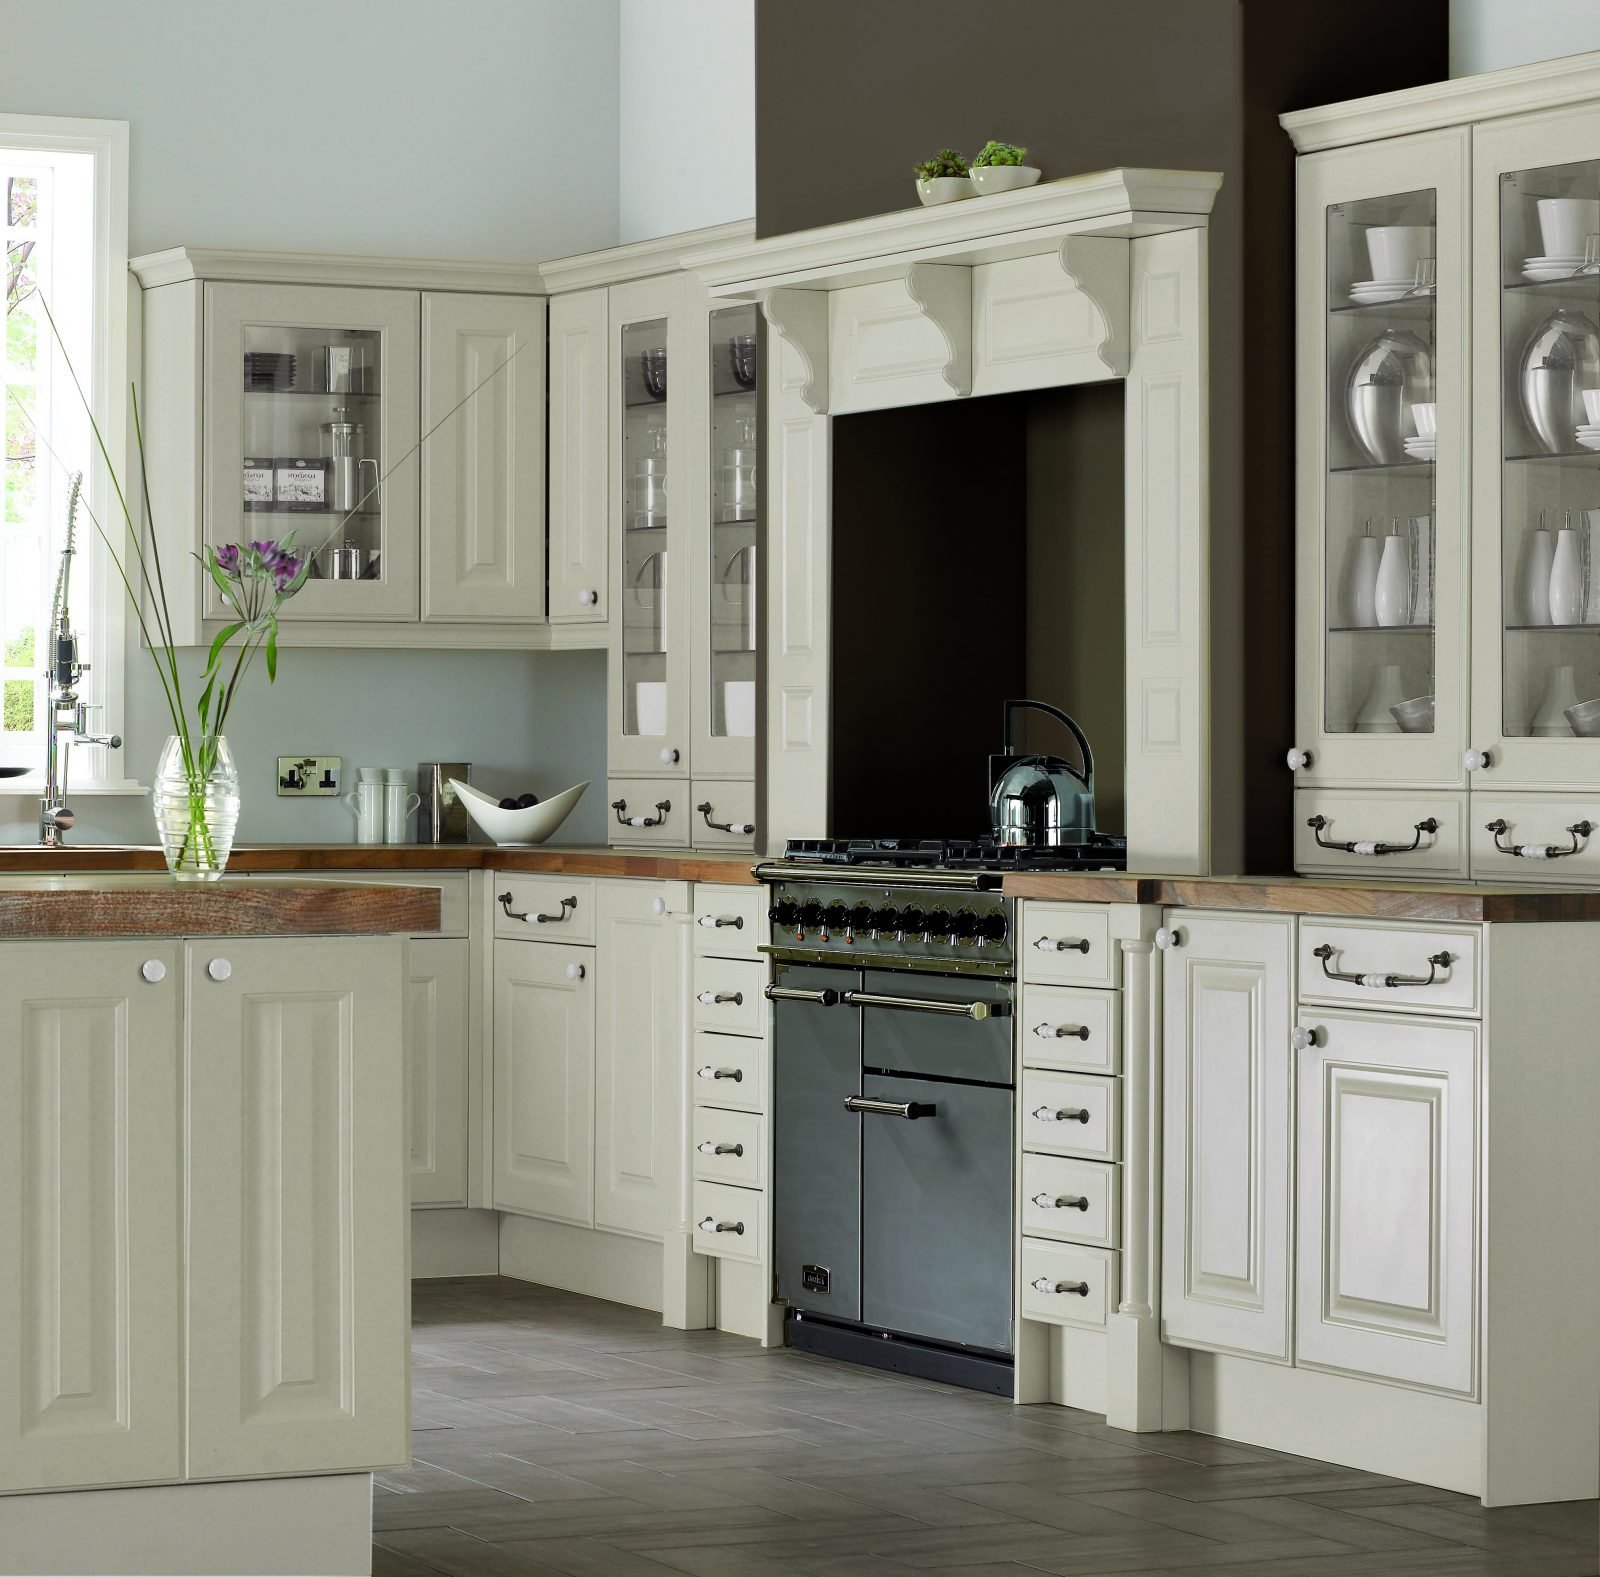 Benchmark Kitchens Oxford